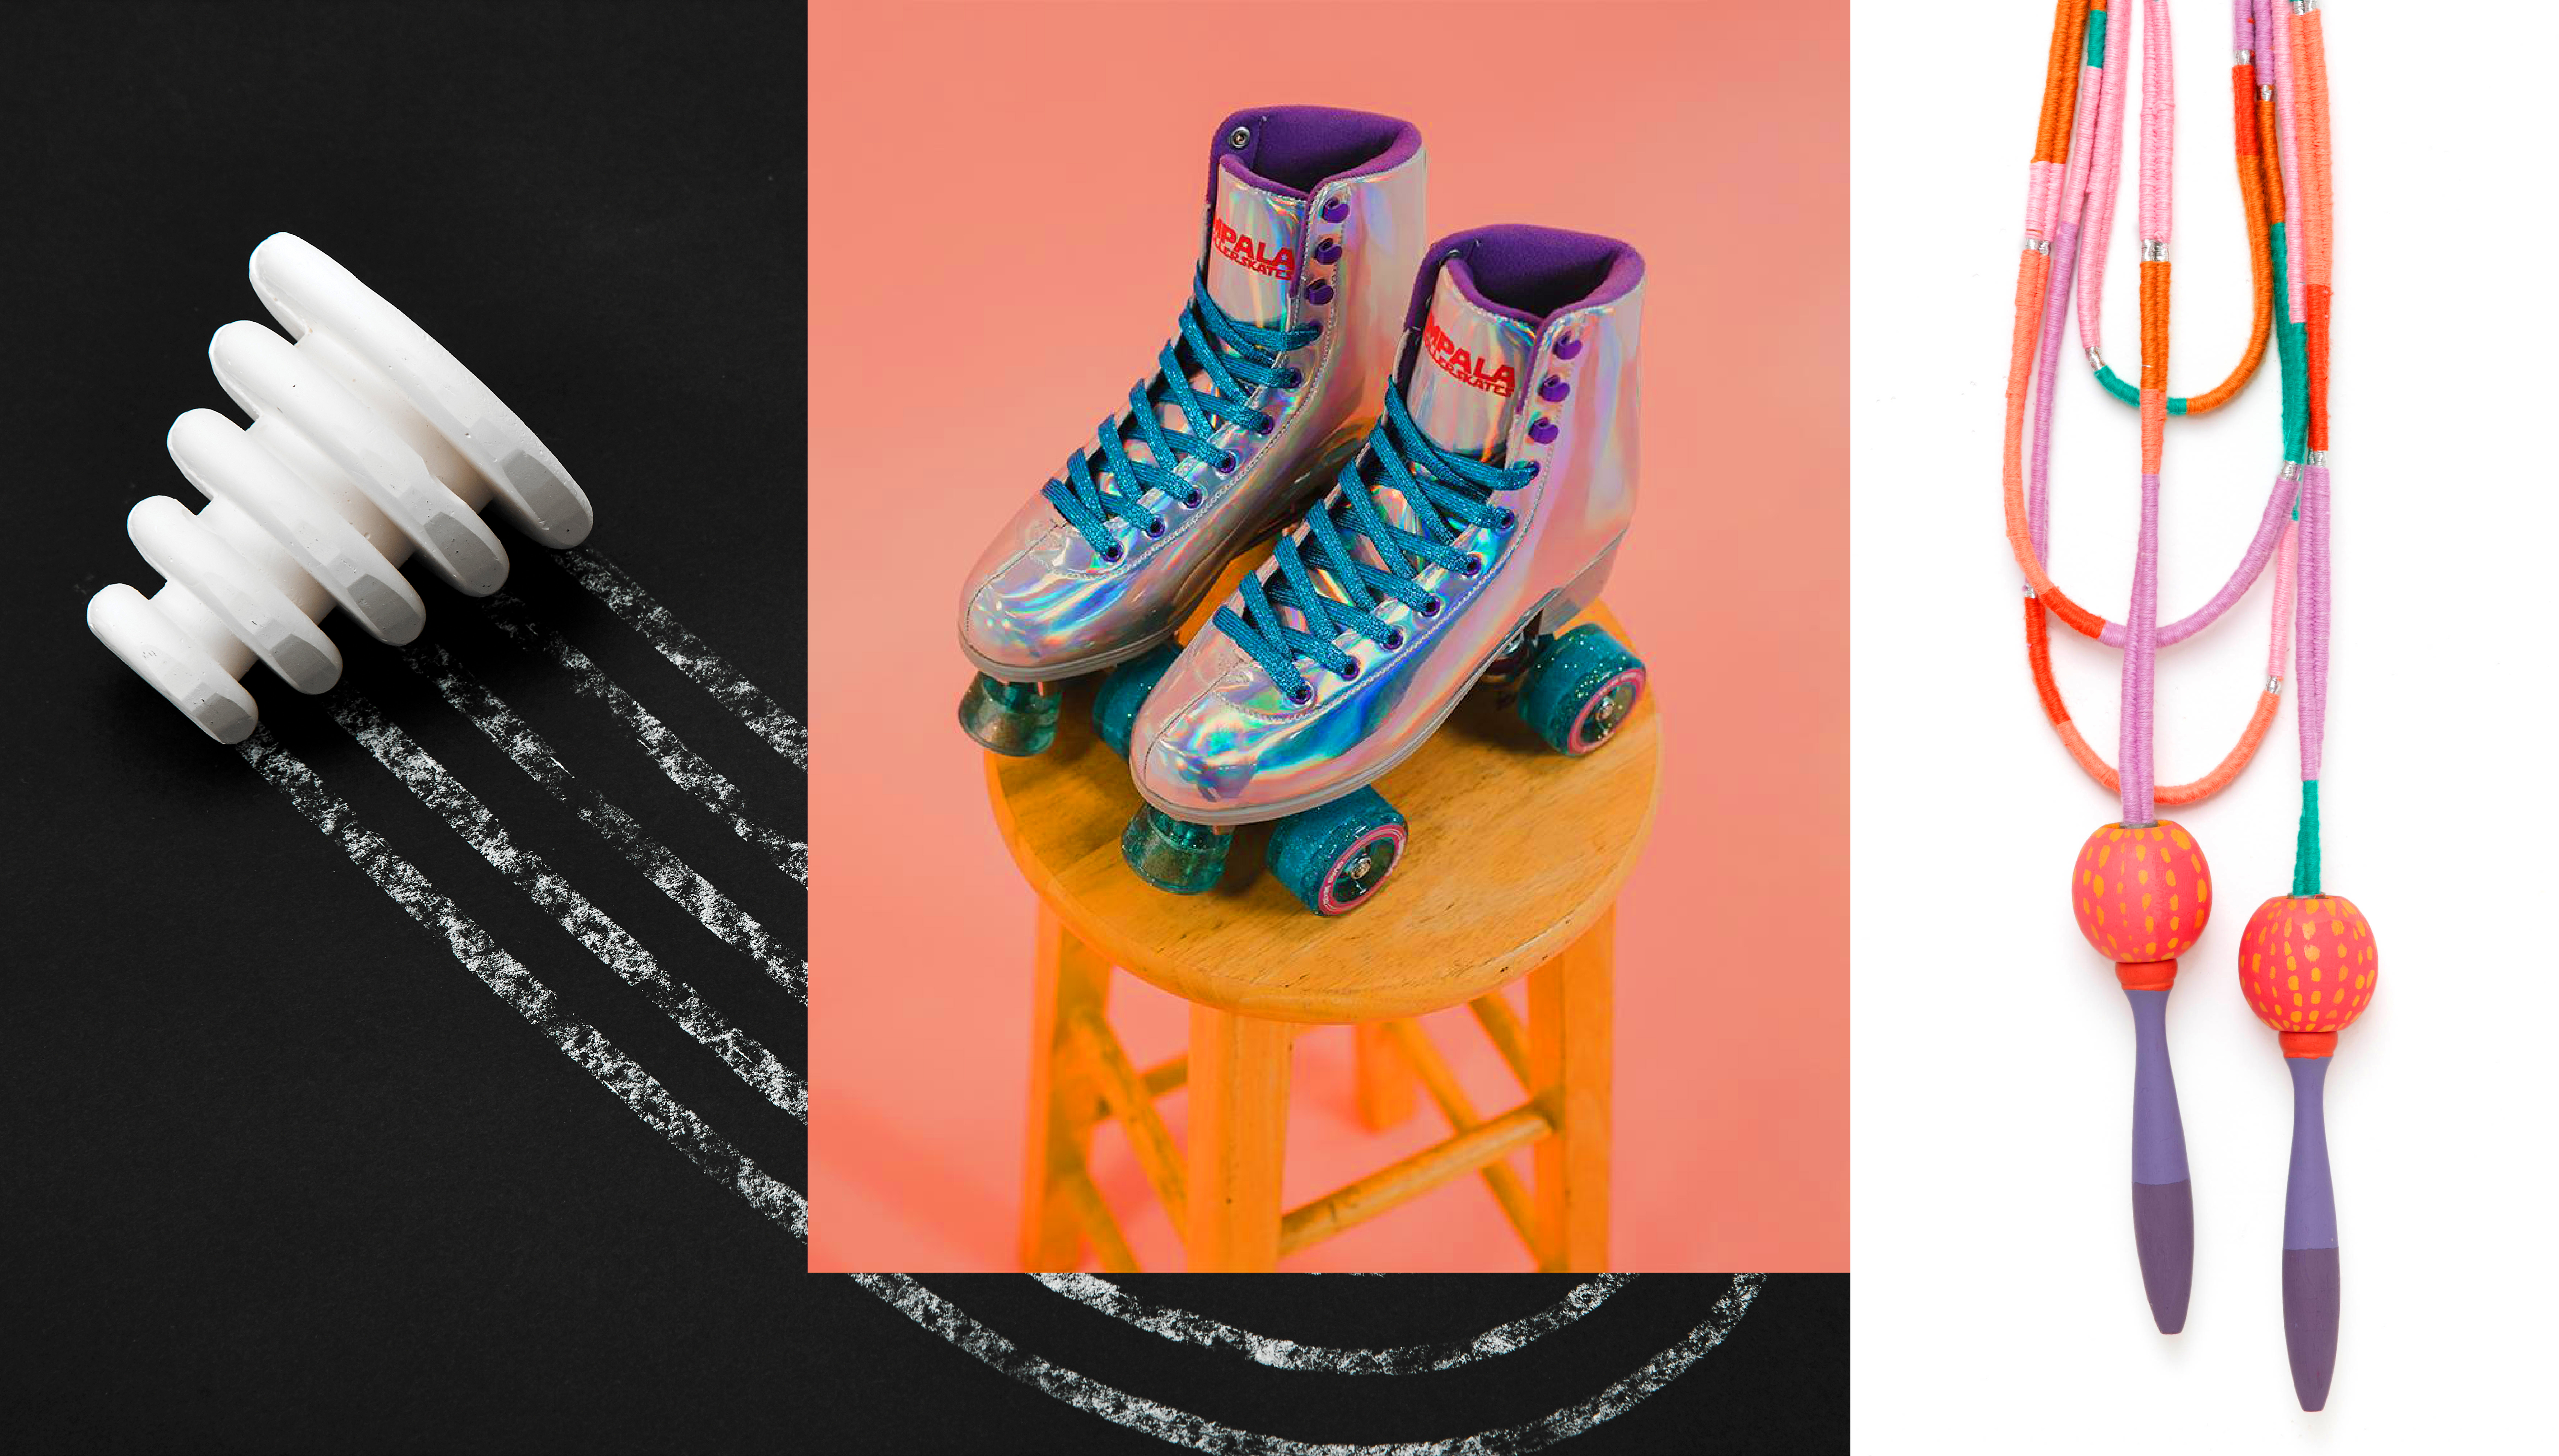 A conical piece of chalk, retro roller skates, and multi-color jump rope